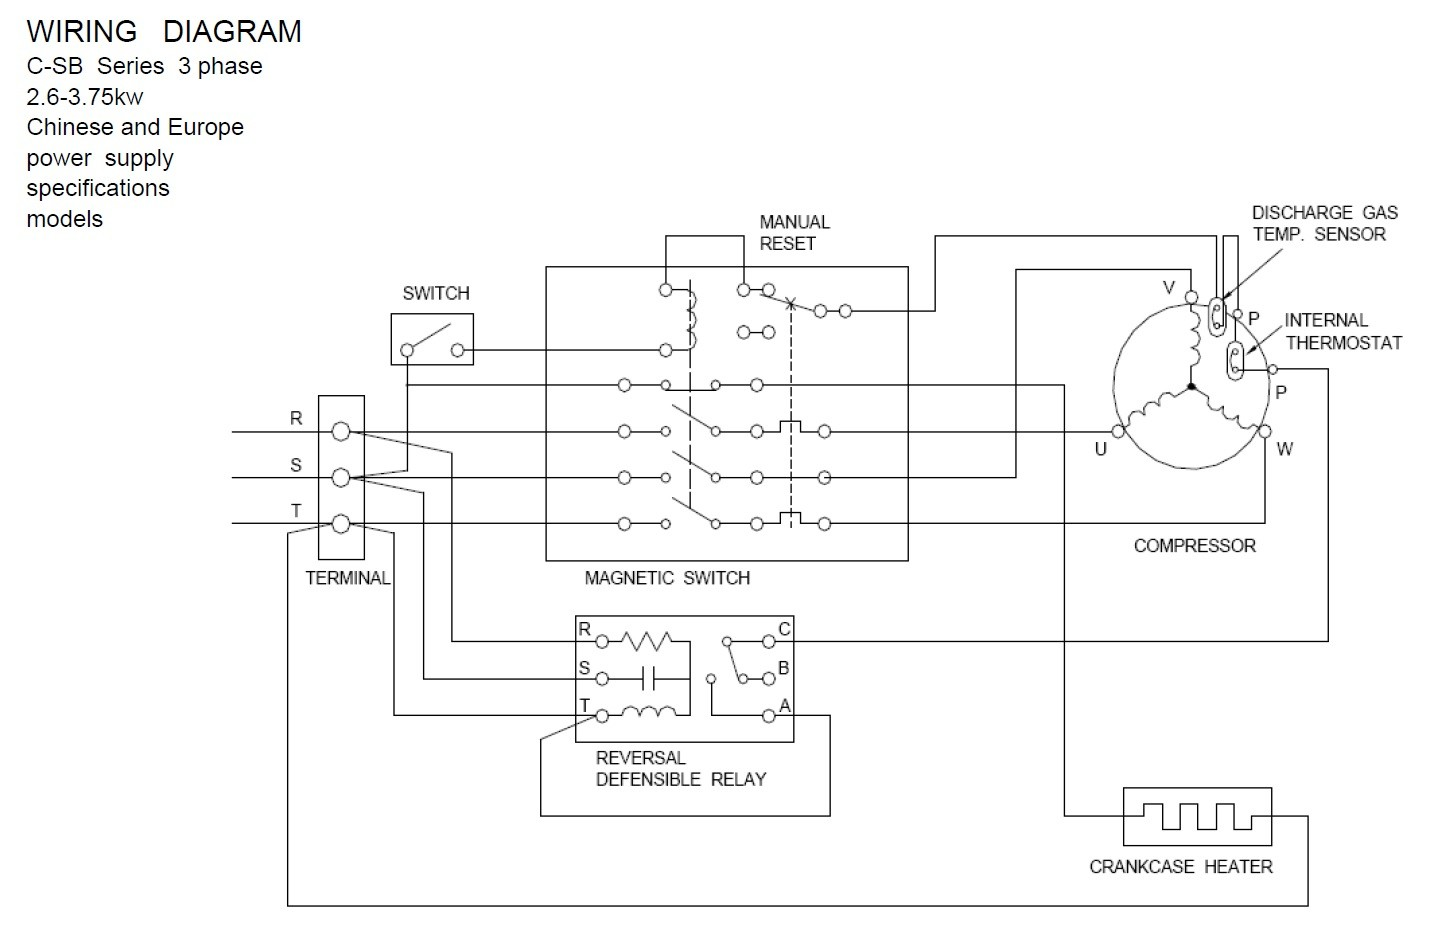 Wiring Diagram For Copeland Condensing Unit Automotive Udqr107w4 Units Todays Rh 10 8 4 1813weddingbarn Com